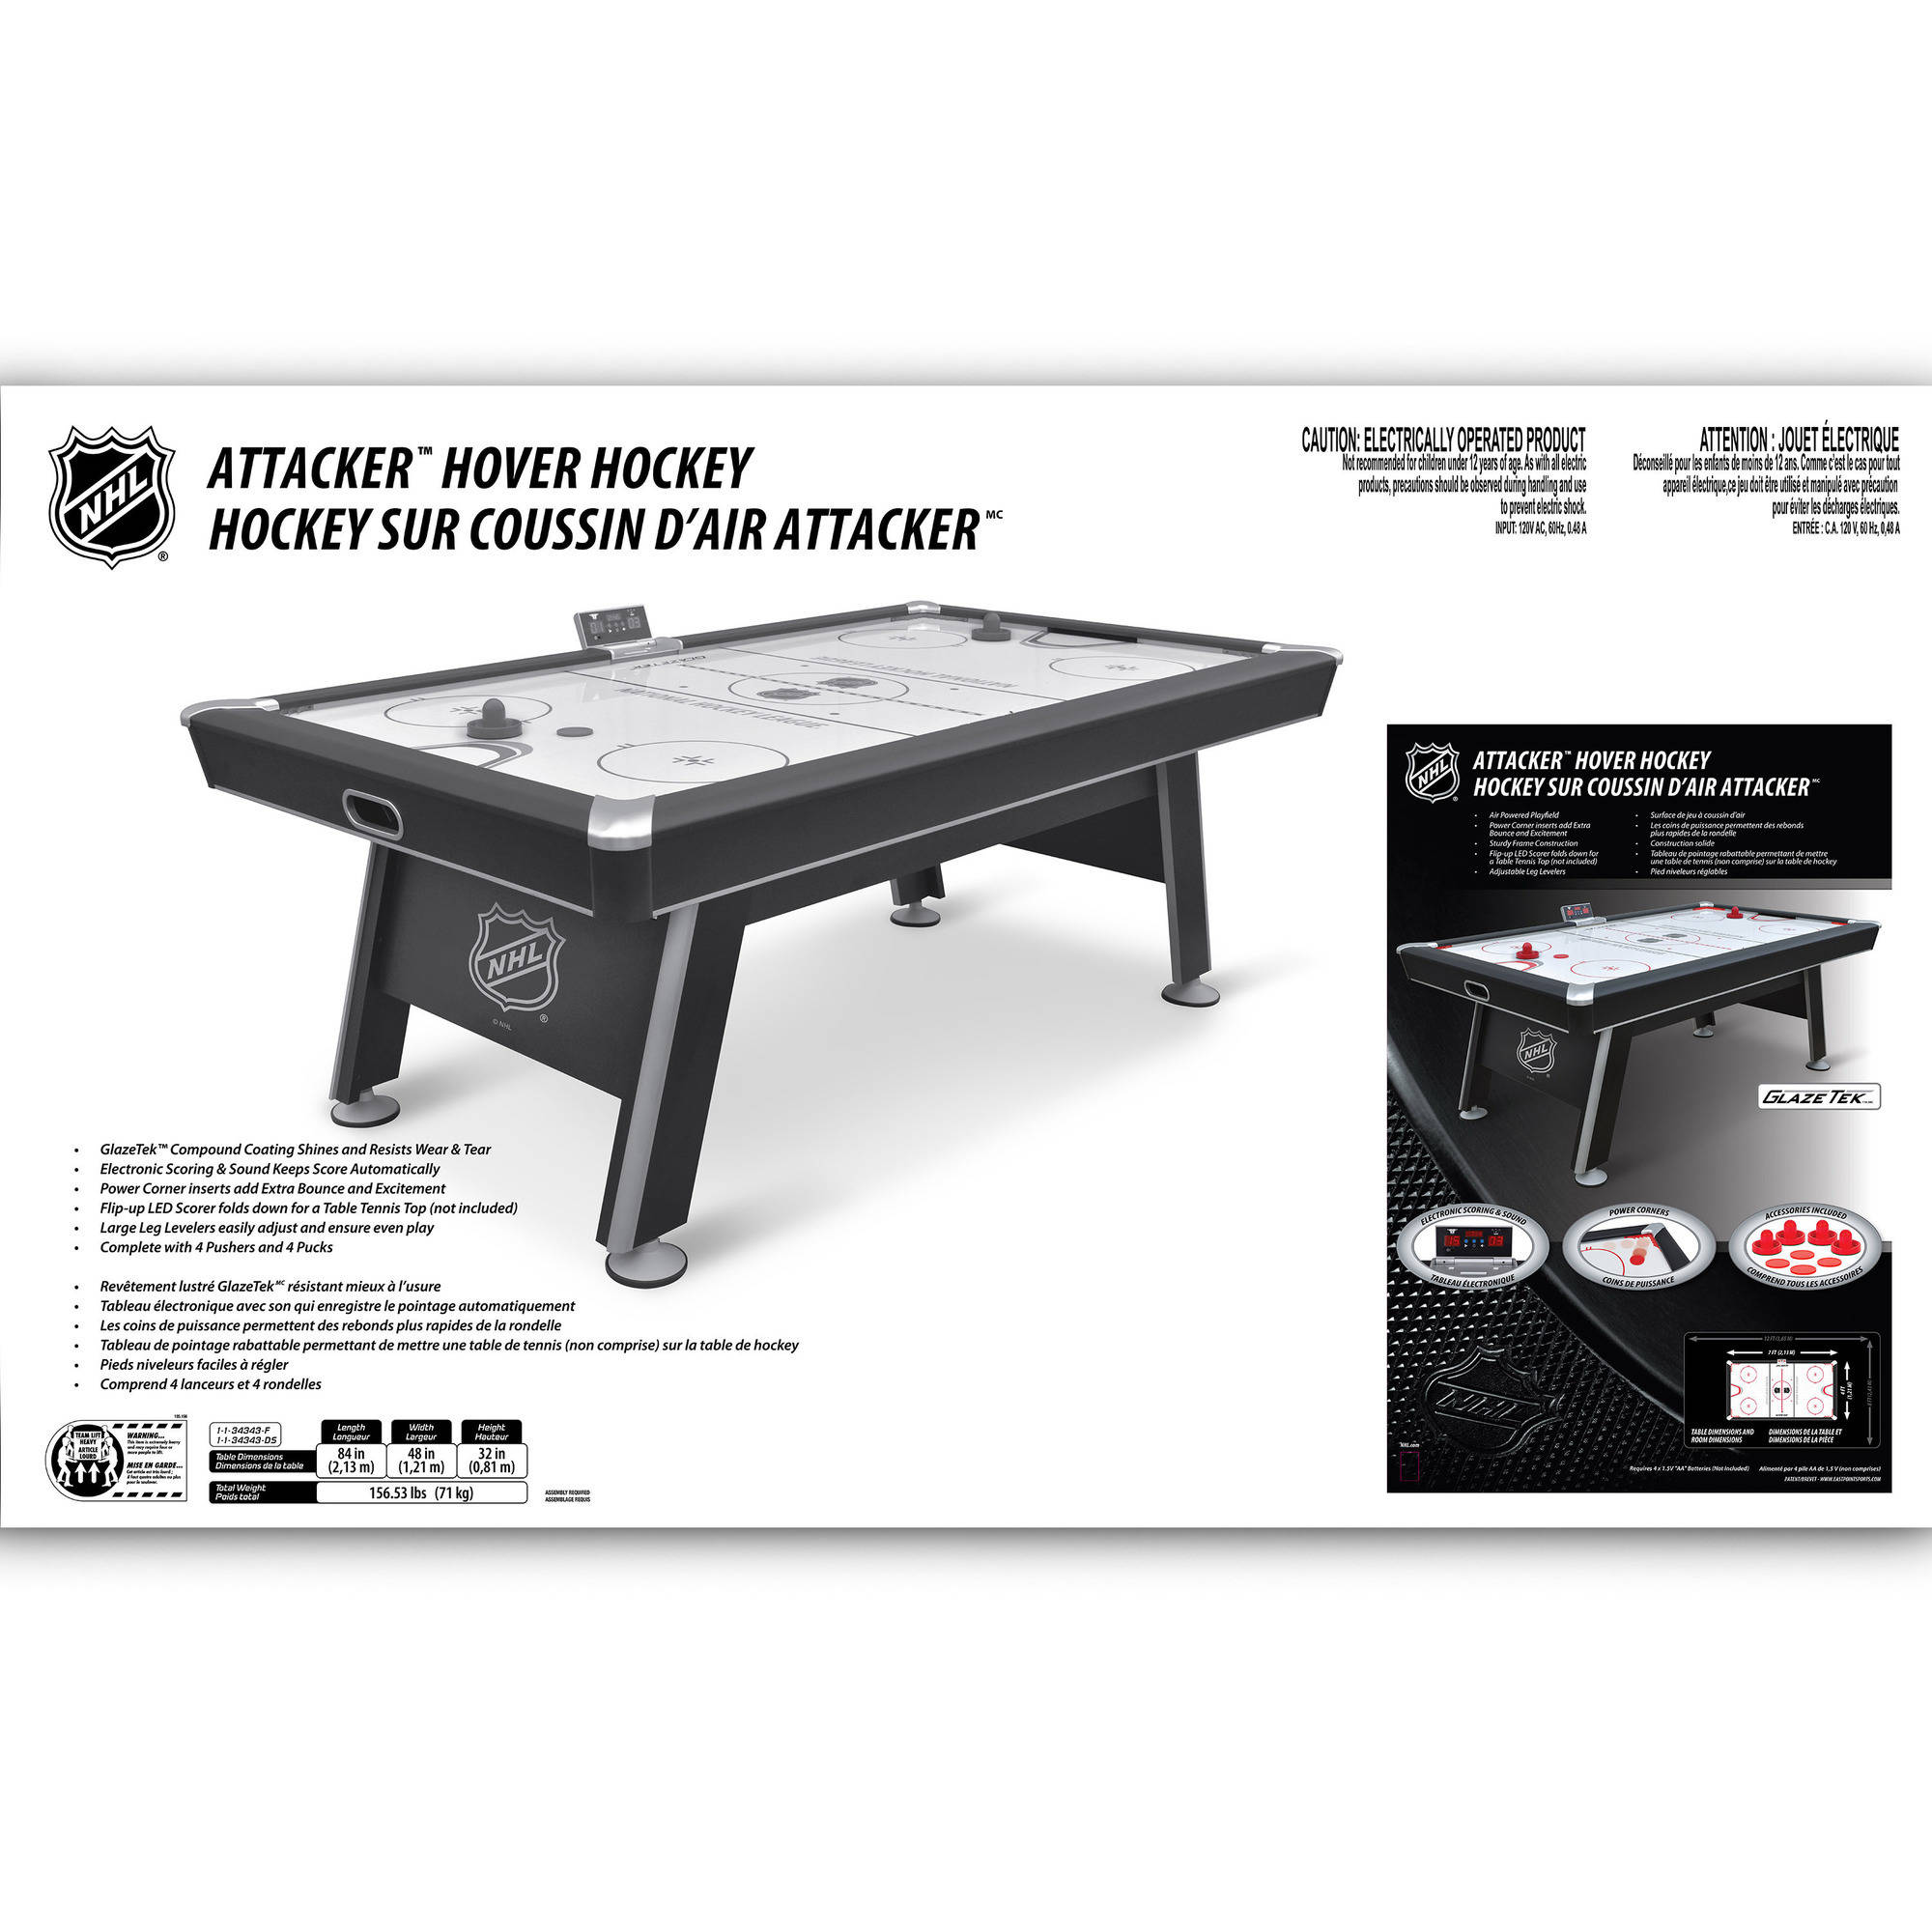 NHL 84 Inch Premium Attacker Hover Air Hockey Table   Walmart.com